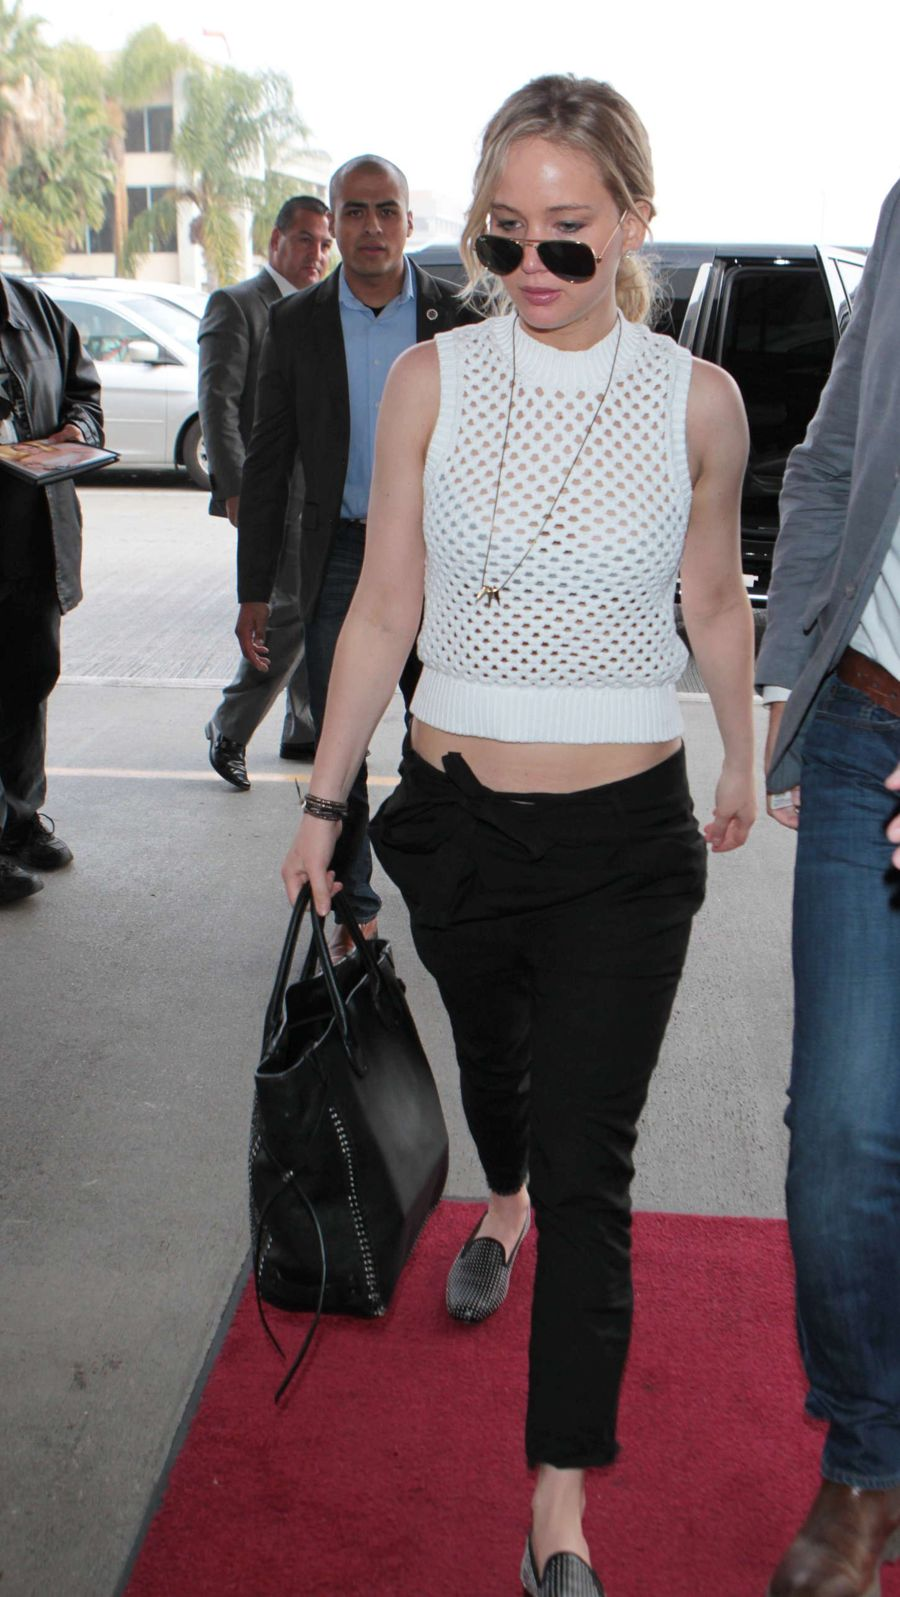 Jennifer Lawrence seen at LAX airport in LA